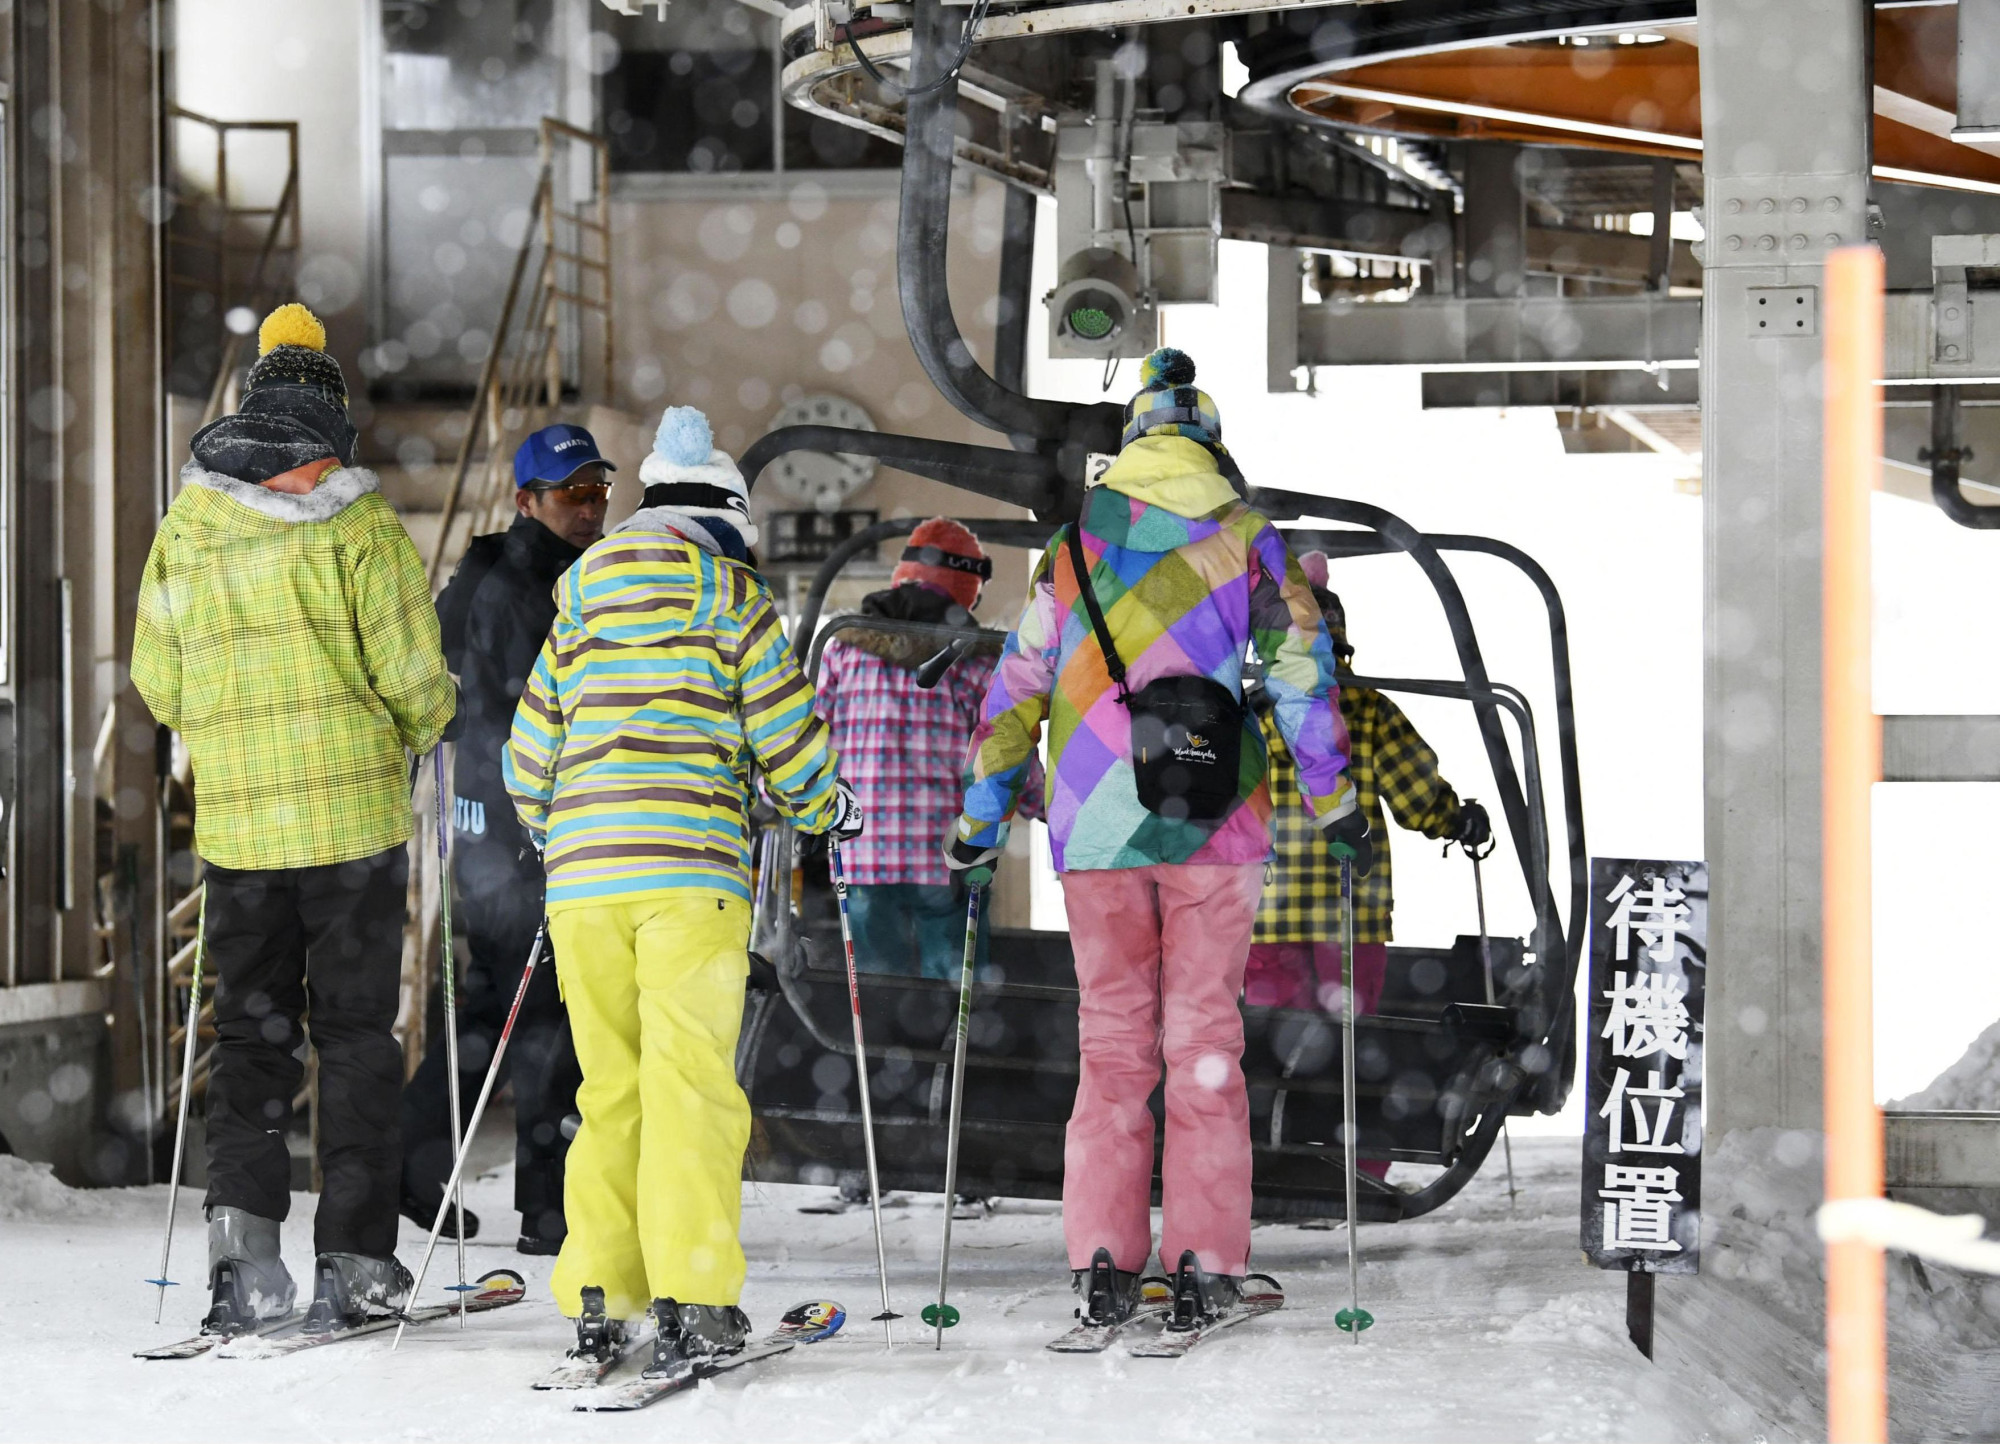 Skiers board a gondola at a ski resort in Kusatsu, Gunma Prefecture, on Wednesday morning. The resort resumed operations partially following a volcanic eruption nearby the previous day, but the number of skiers declined sharply. | KYODO